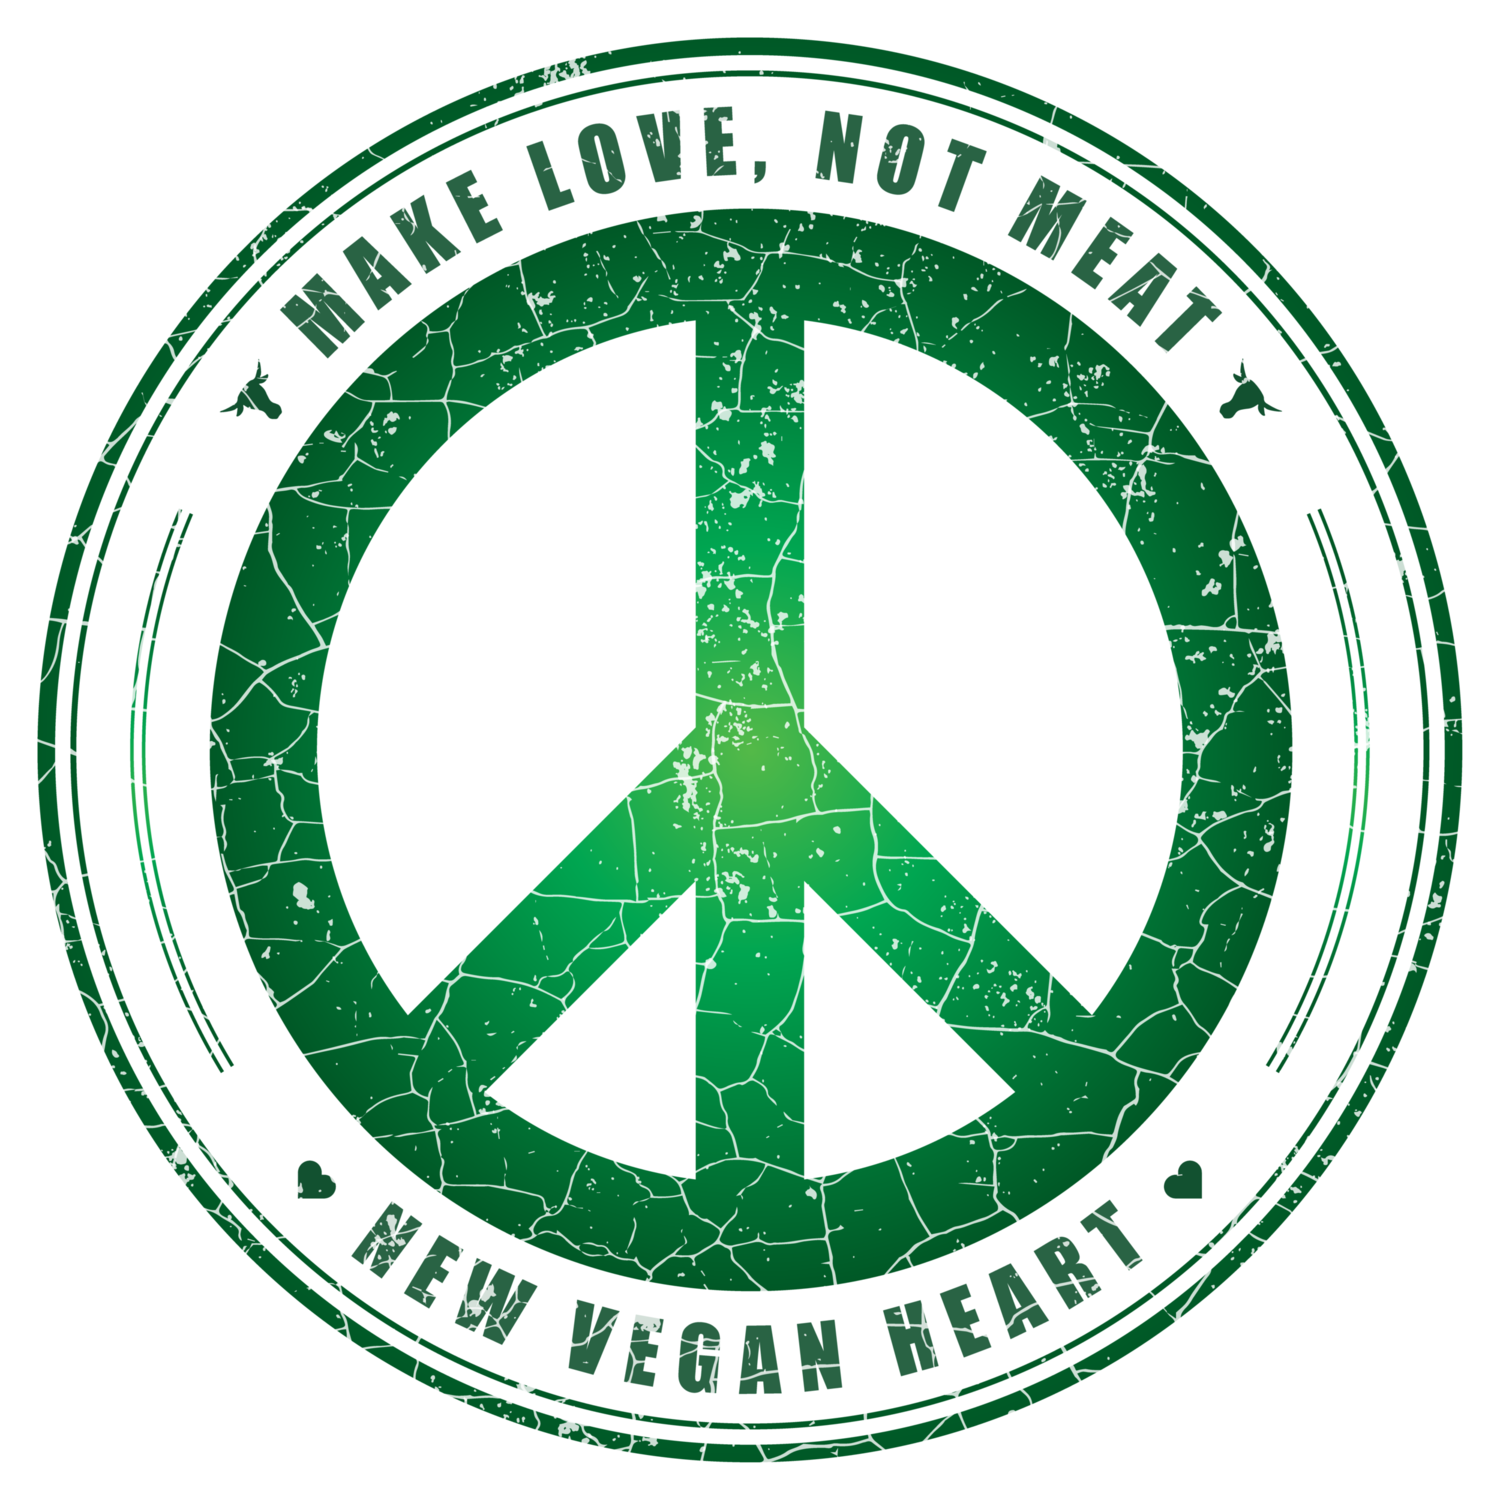 New Vegan Heart